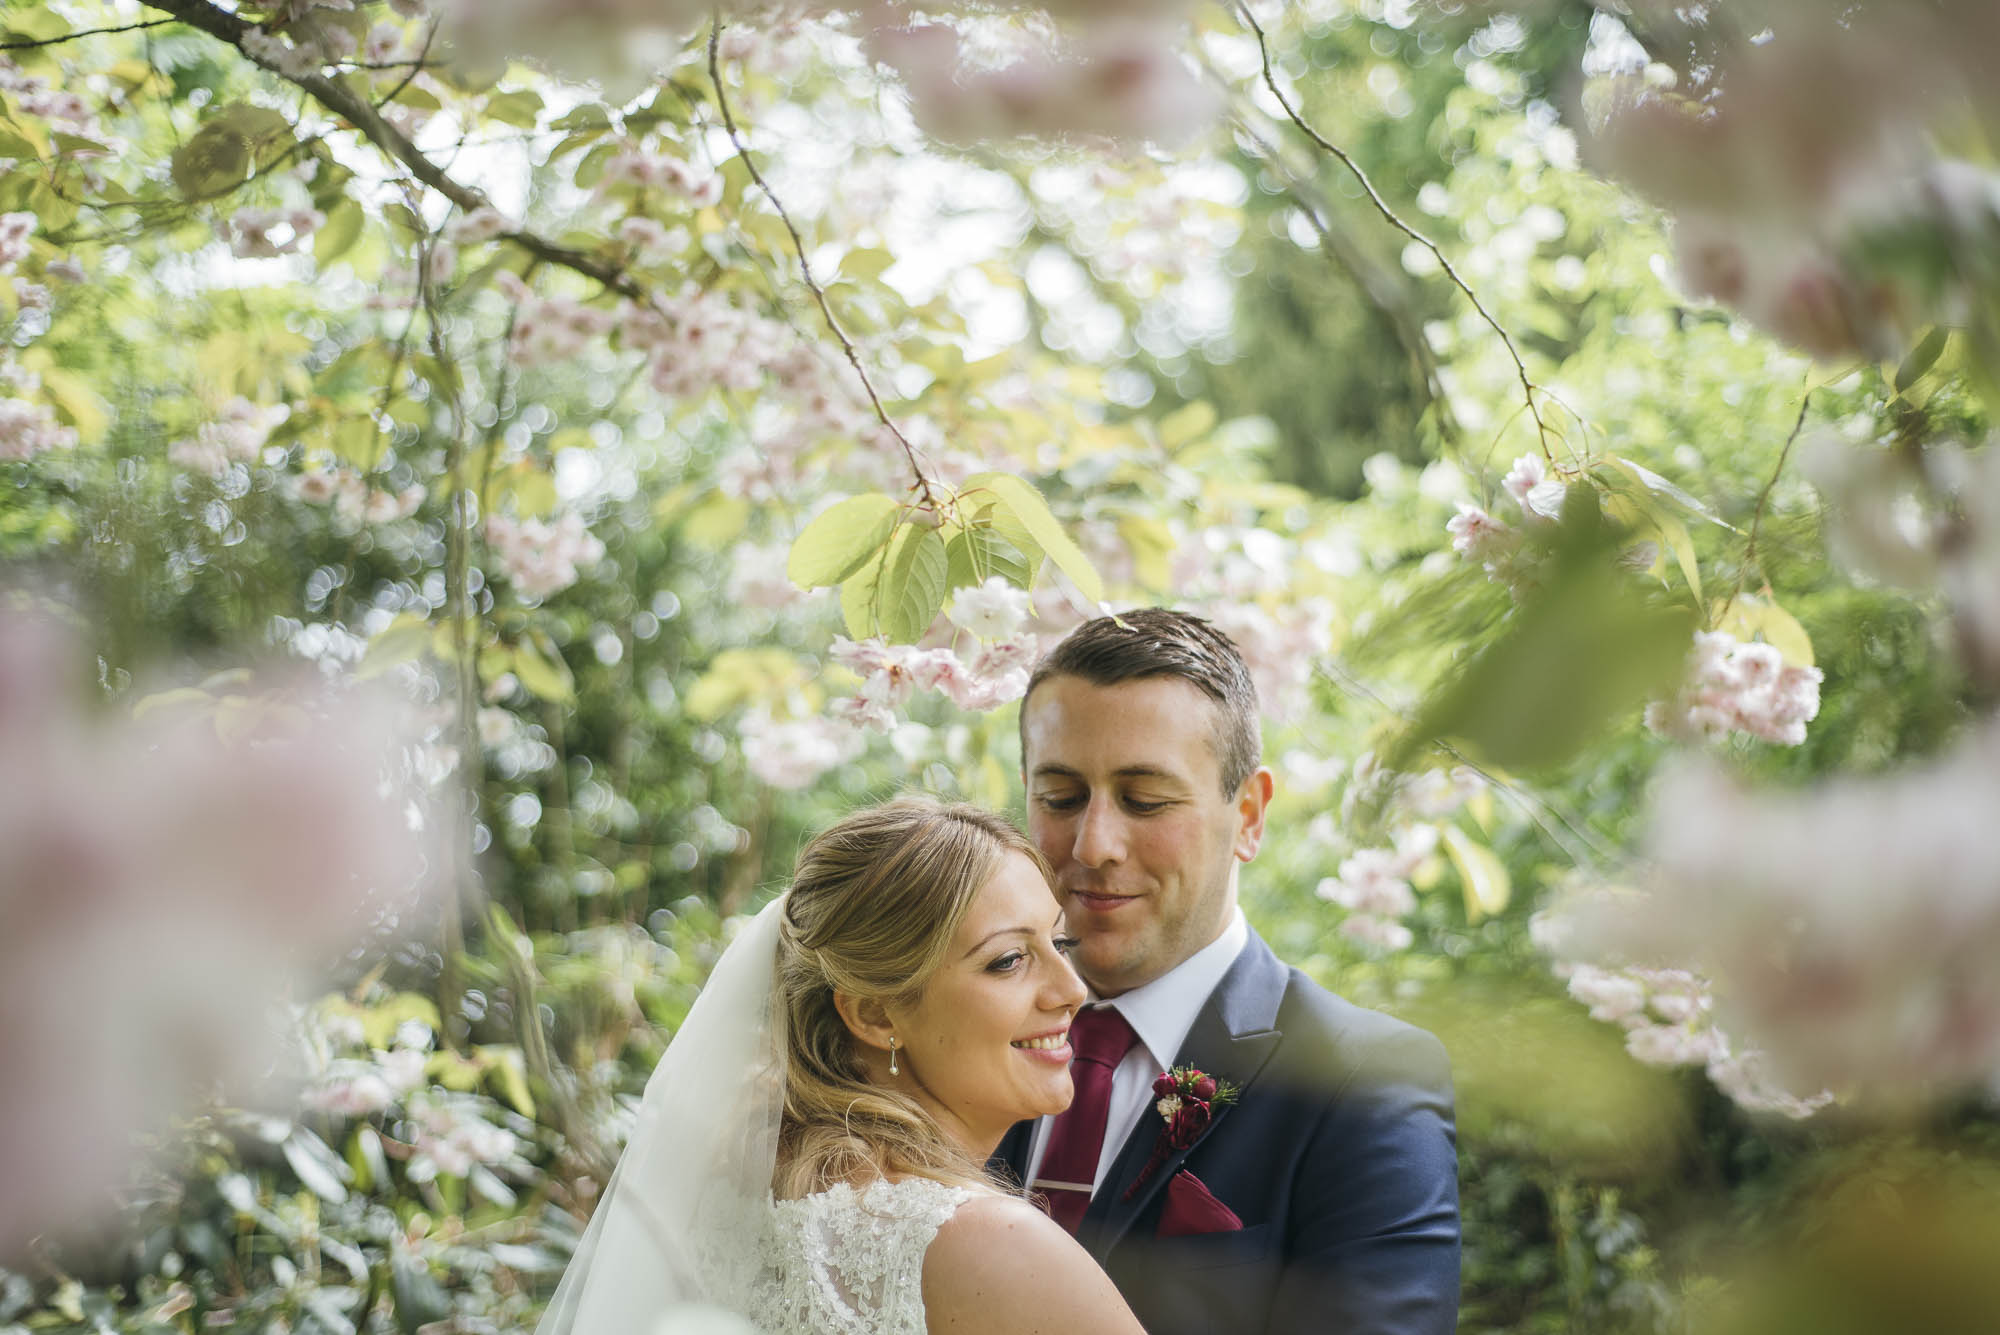 Essex Wedding Photographer Creative London Wedding photographer